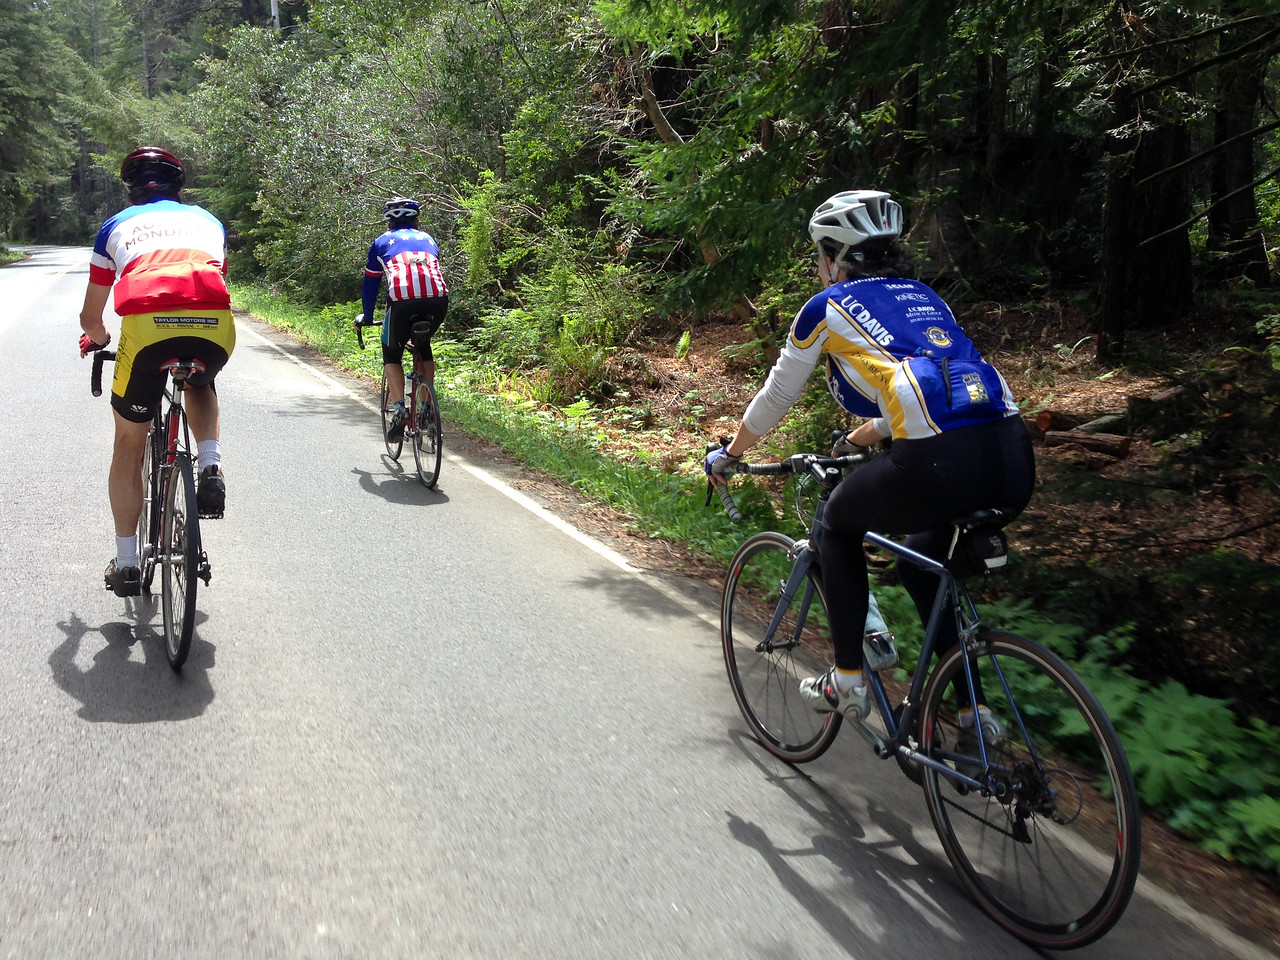 One of the rare moments when I was close enough to snap a pic of Rick, Liz, & Guy on the Comptche-Ukiah Road.